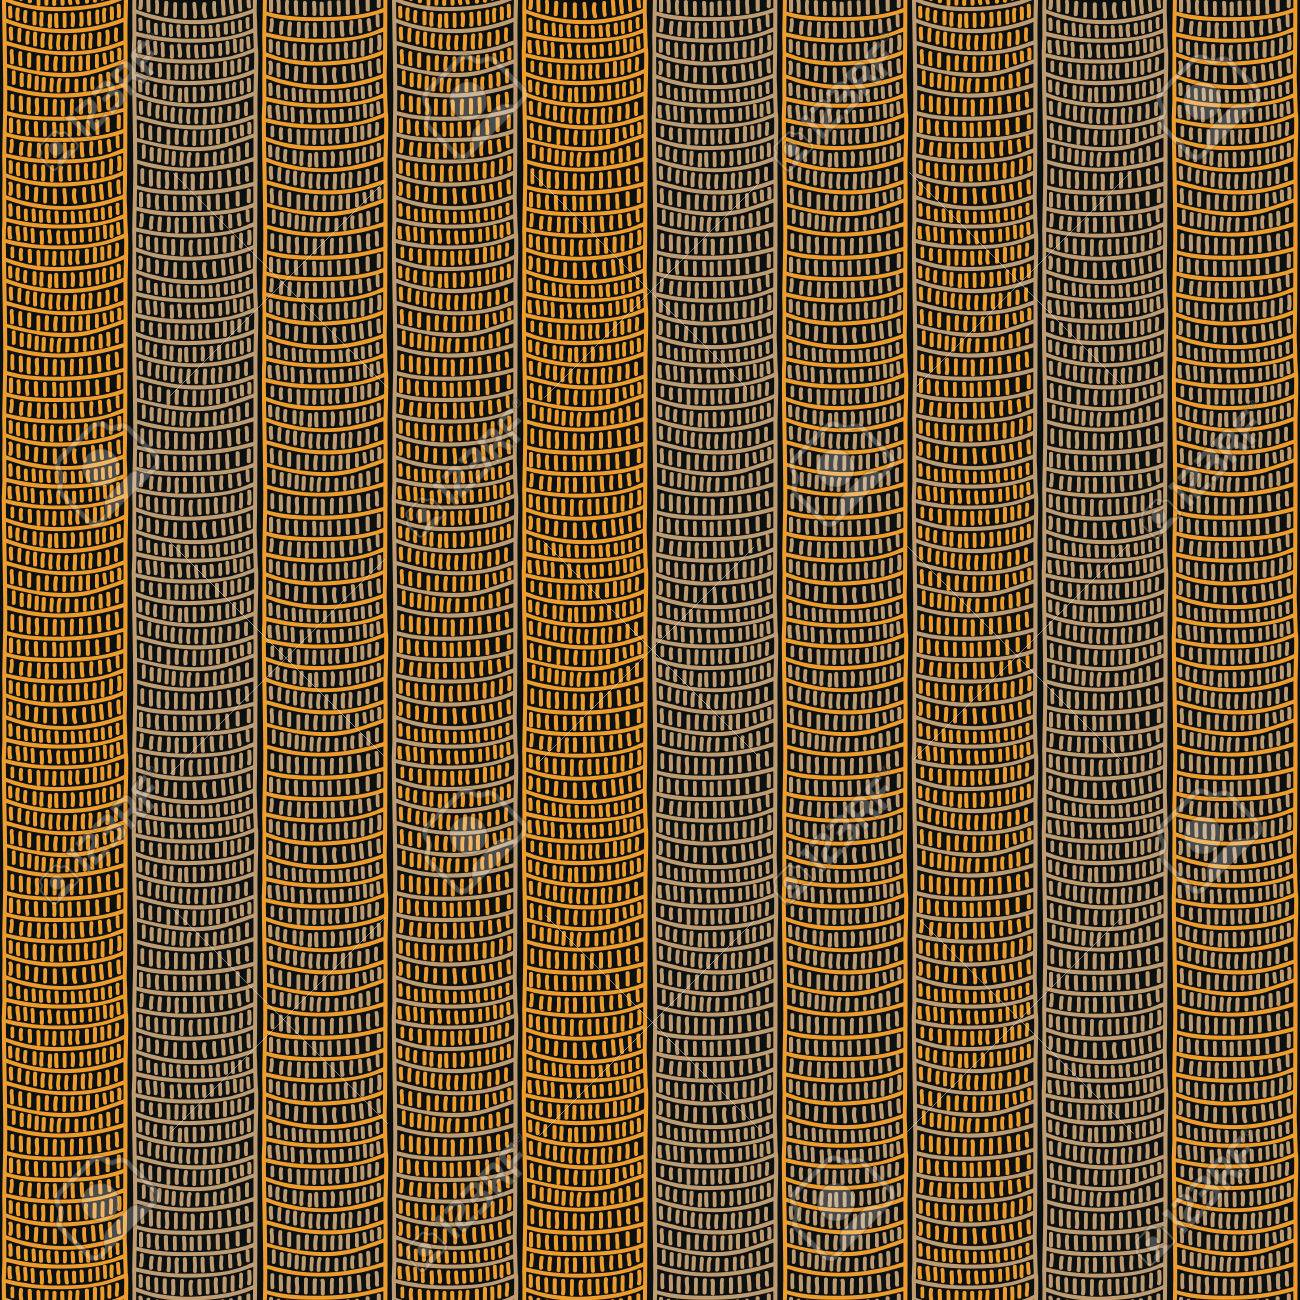 Motif Decoratif Africain Traditionnel Seamless Texture Stylise Avec